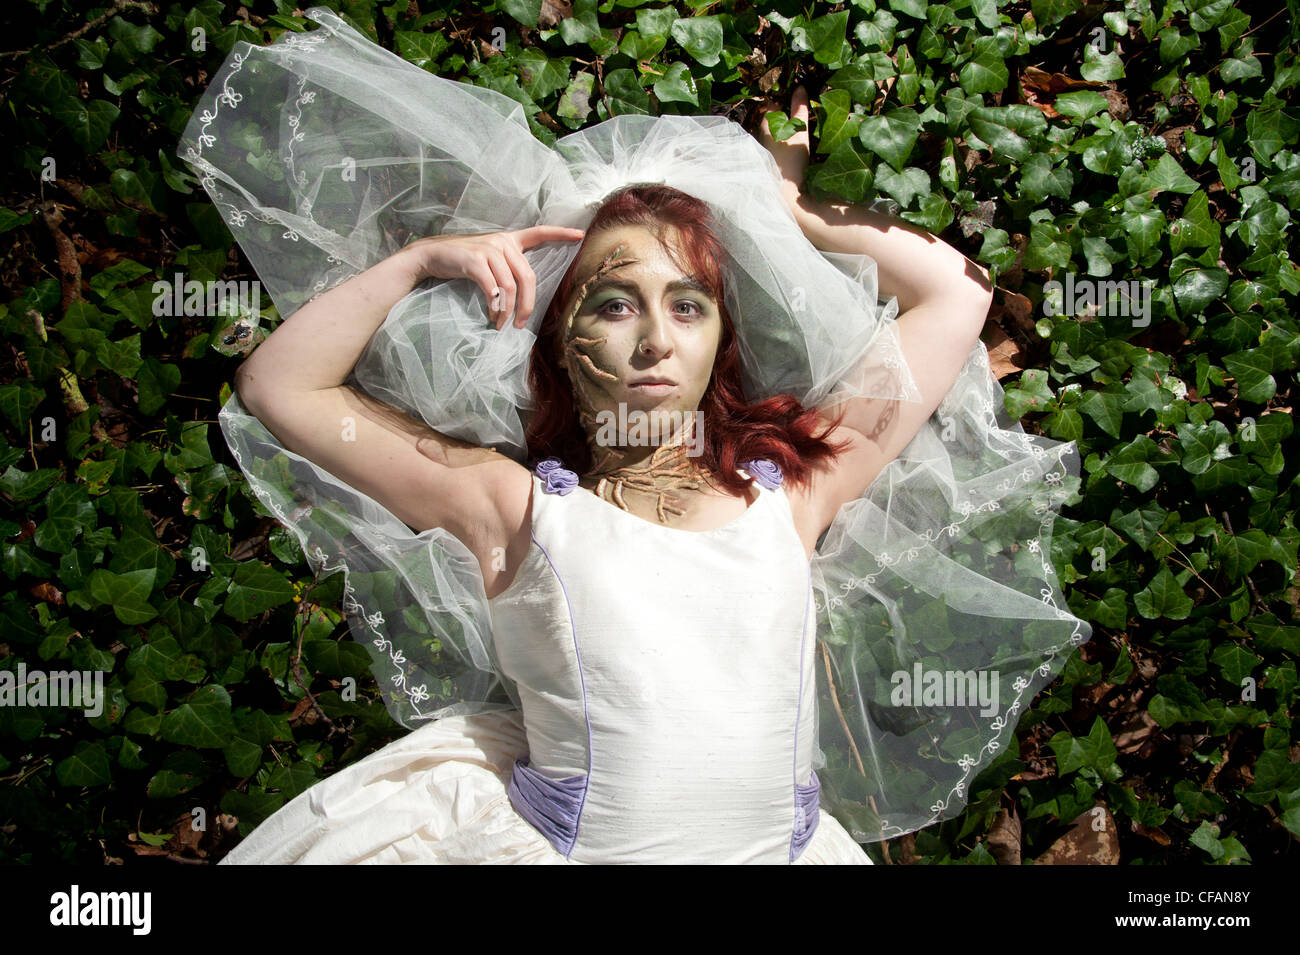 A young woman dressed as a bride lying in ivy alone in the woods in a 'trash the dress' photoshoot - Stock Image